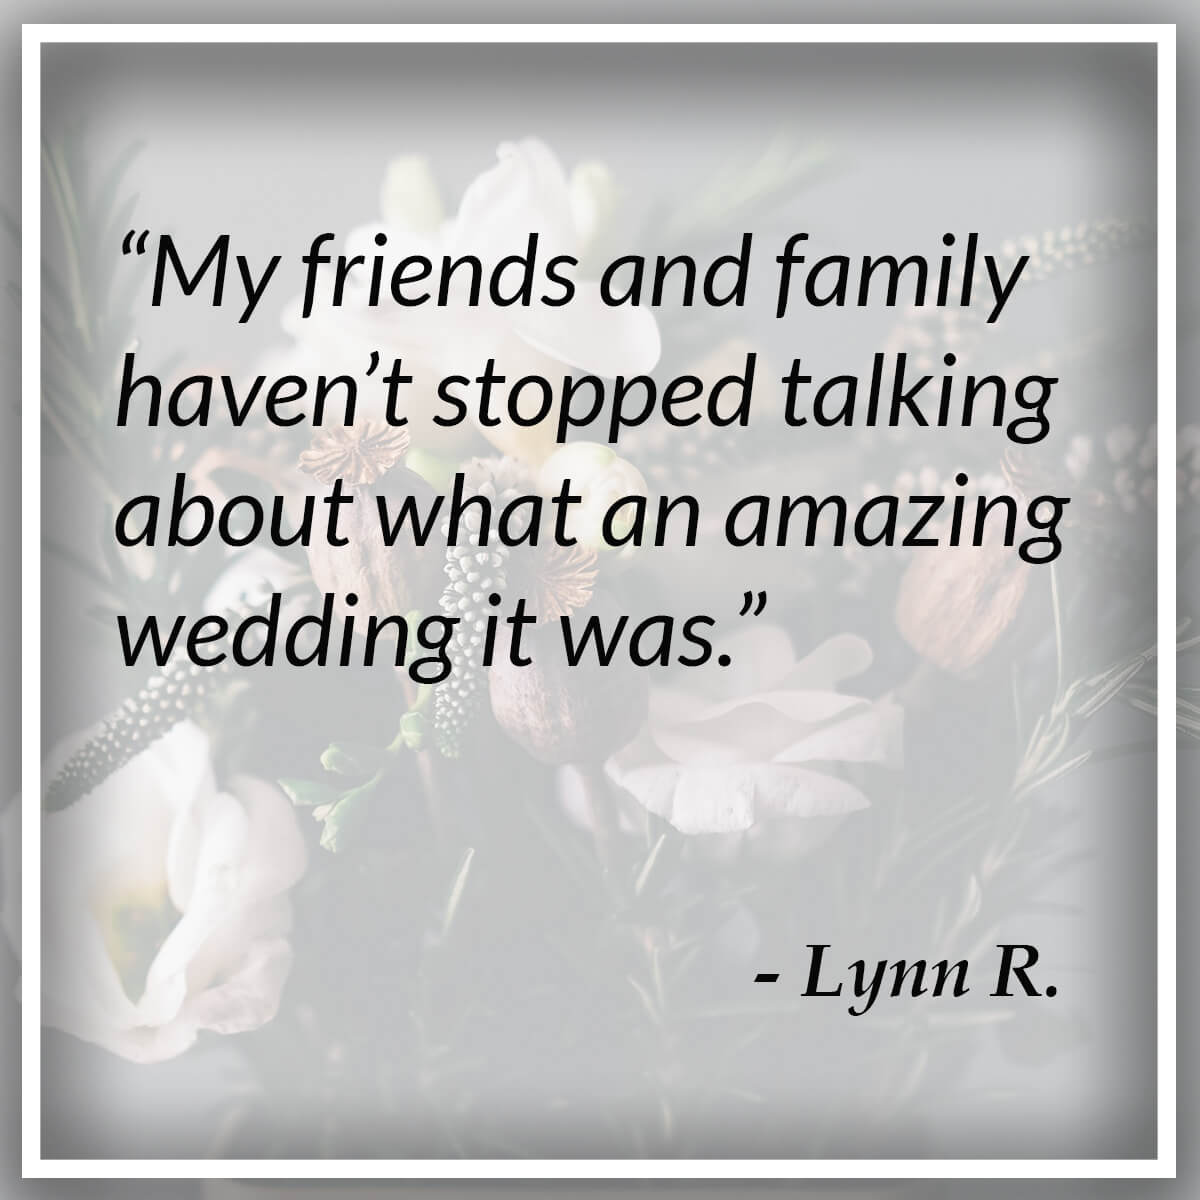 My friends and family haven't stopped talking about what an amazing wedding it was. - Lynn R.